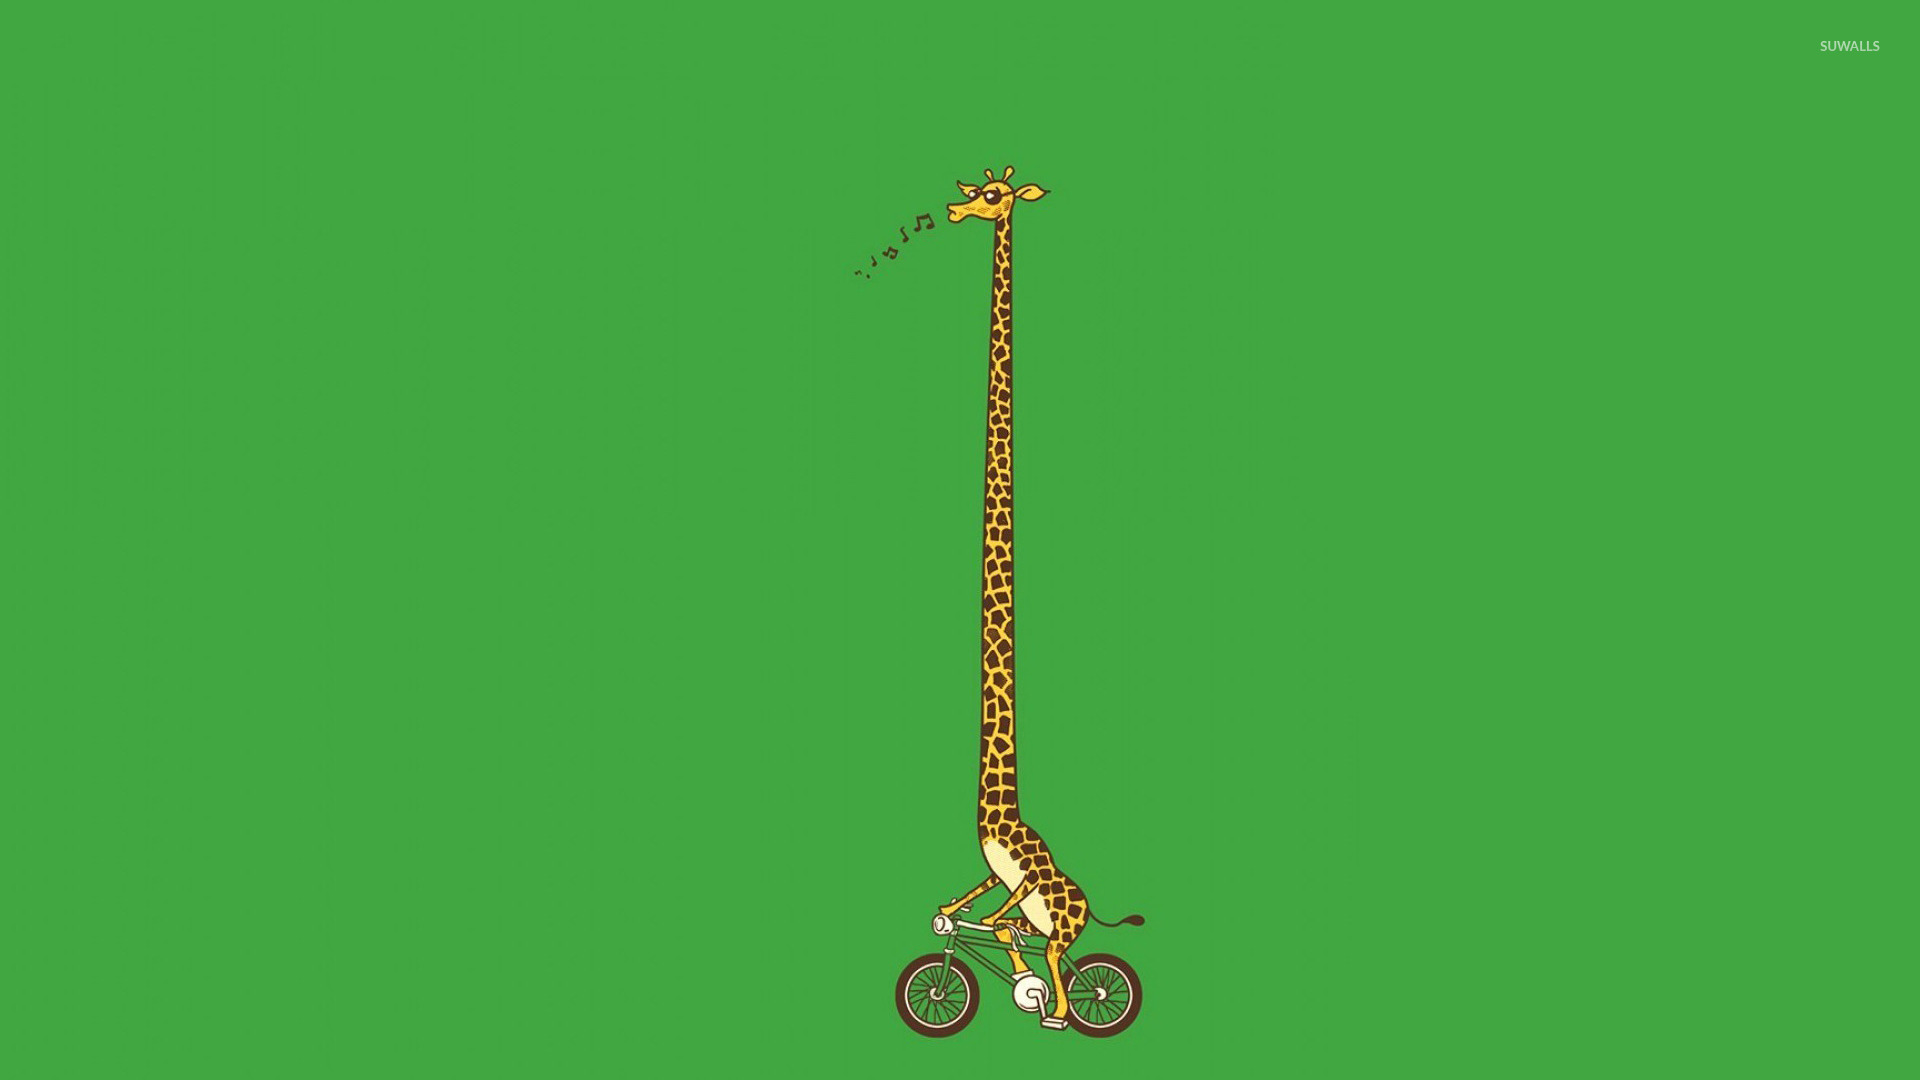 1920x1080 funny giraffe desktop - photo #35